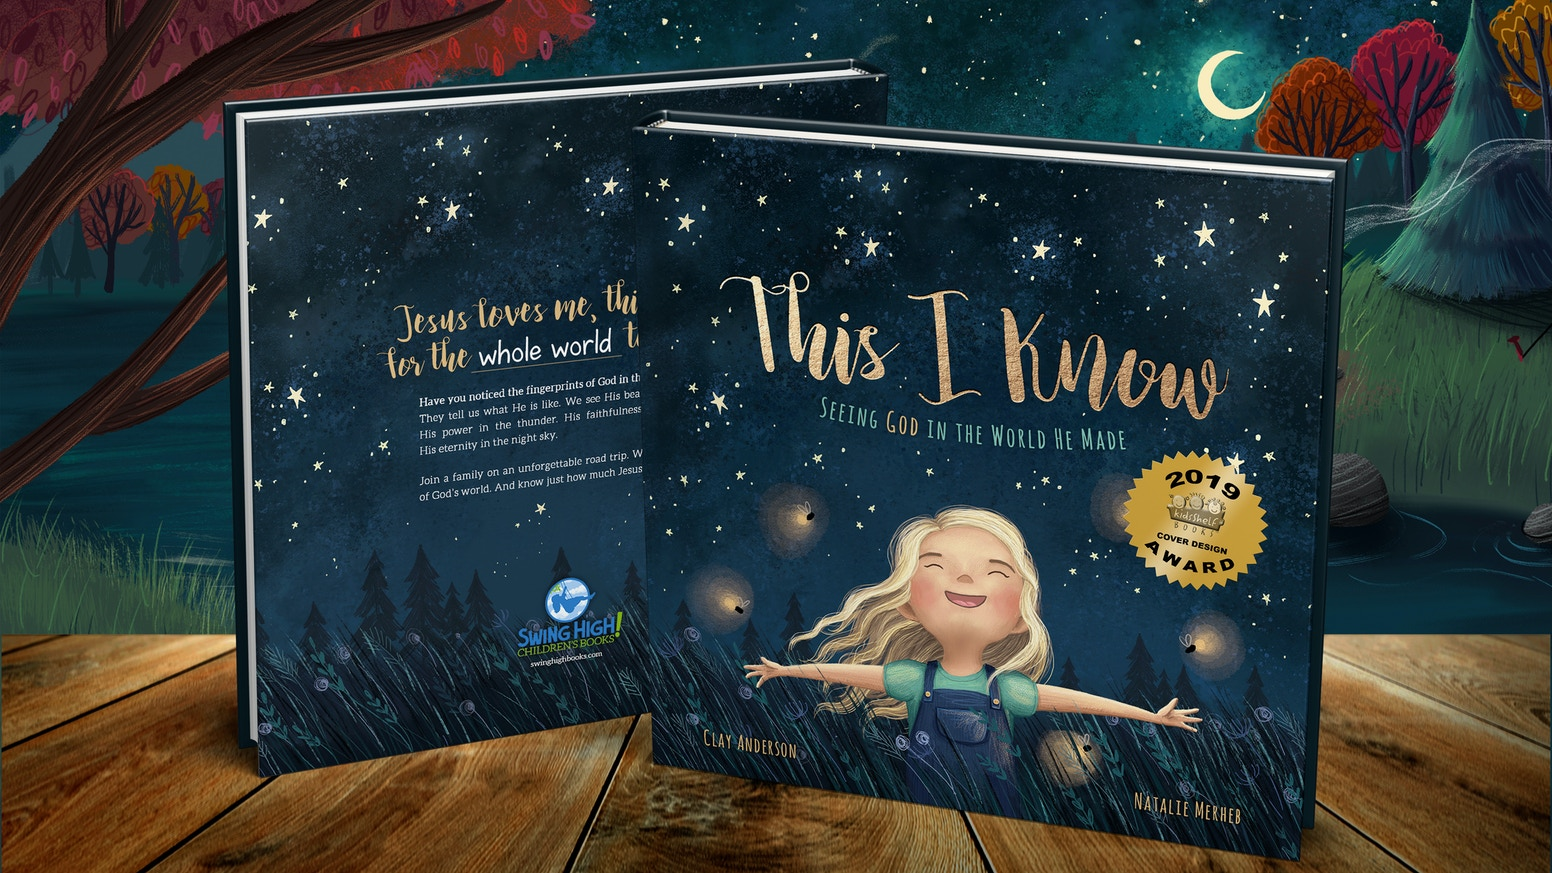 Discover the wonder of God's world together in this beautiful children's book—plus resources for families and churches. Successfully funded and releasing in November!